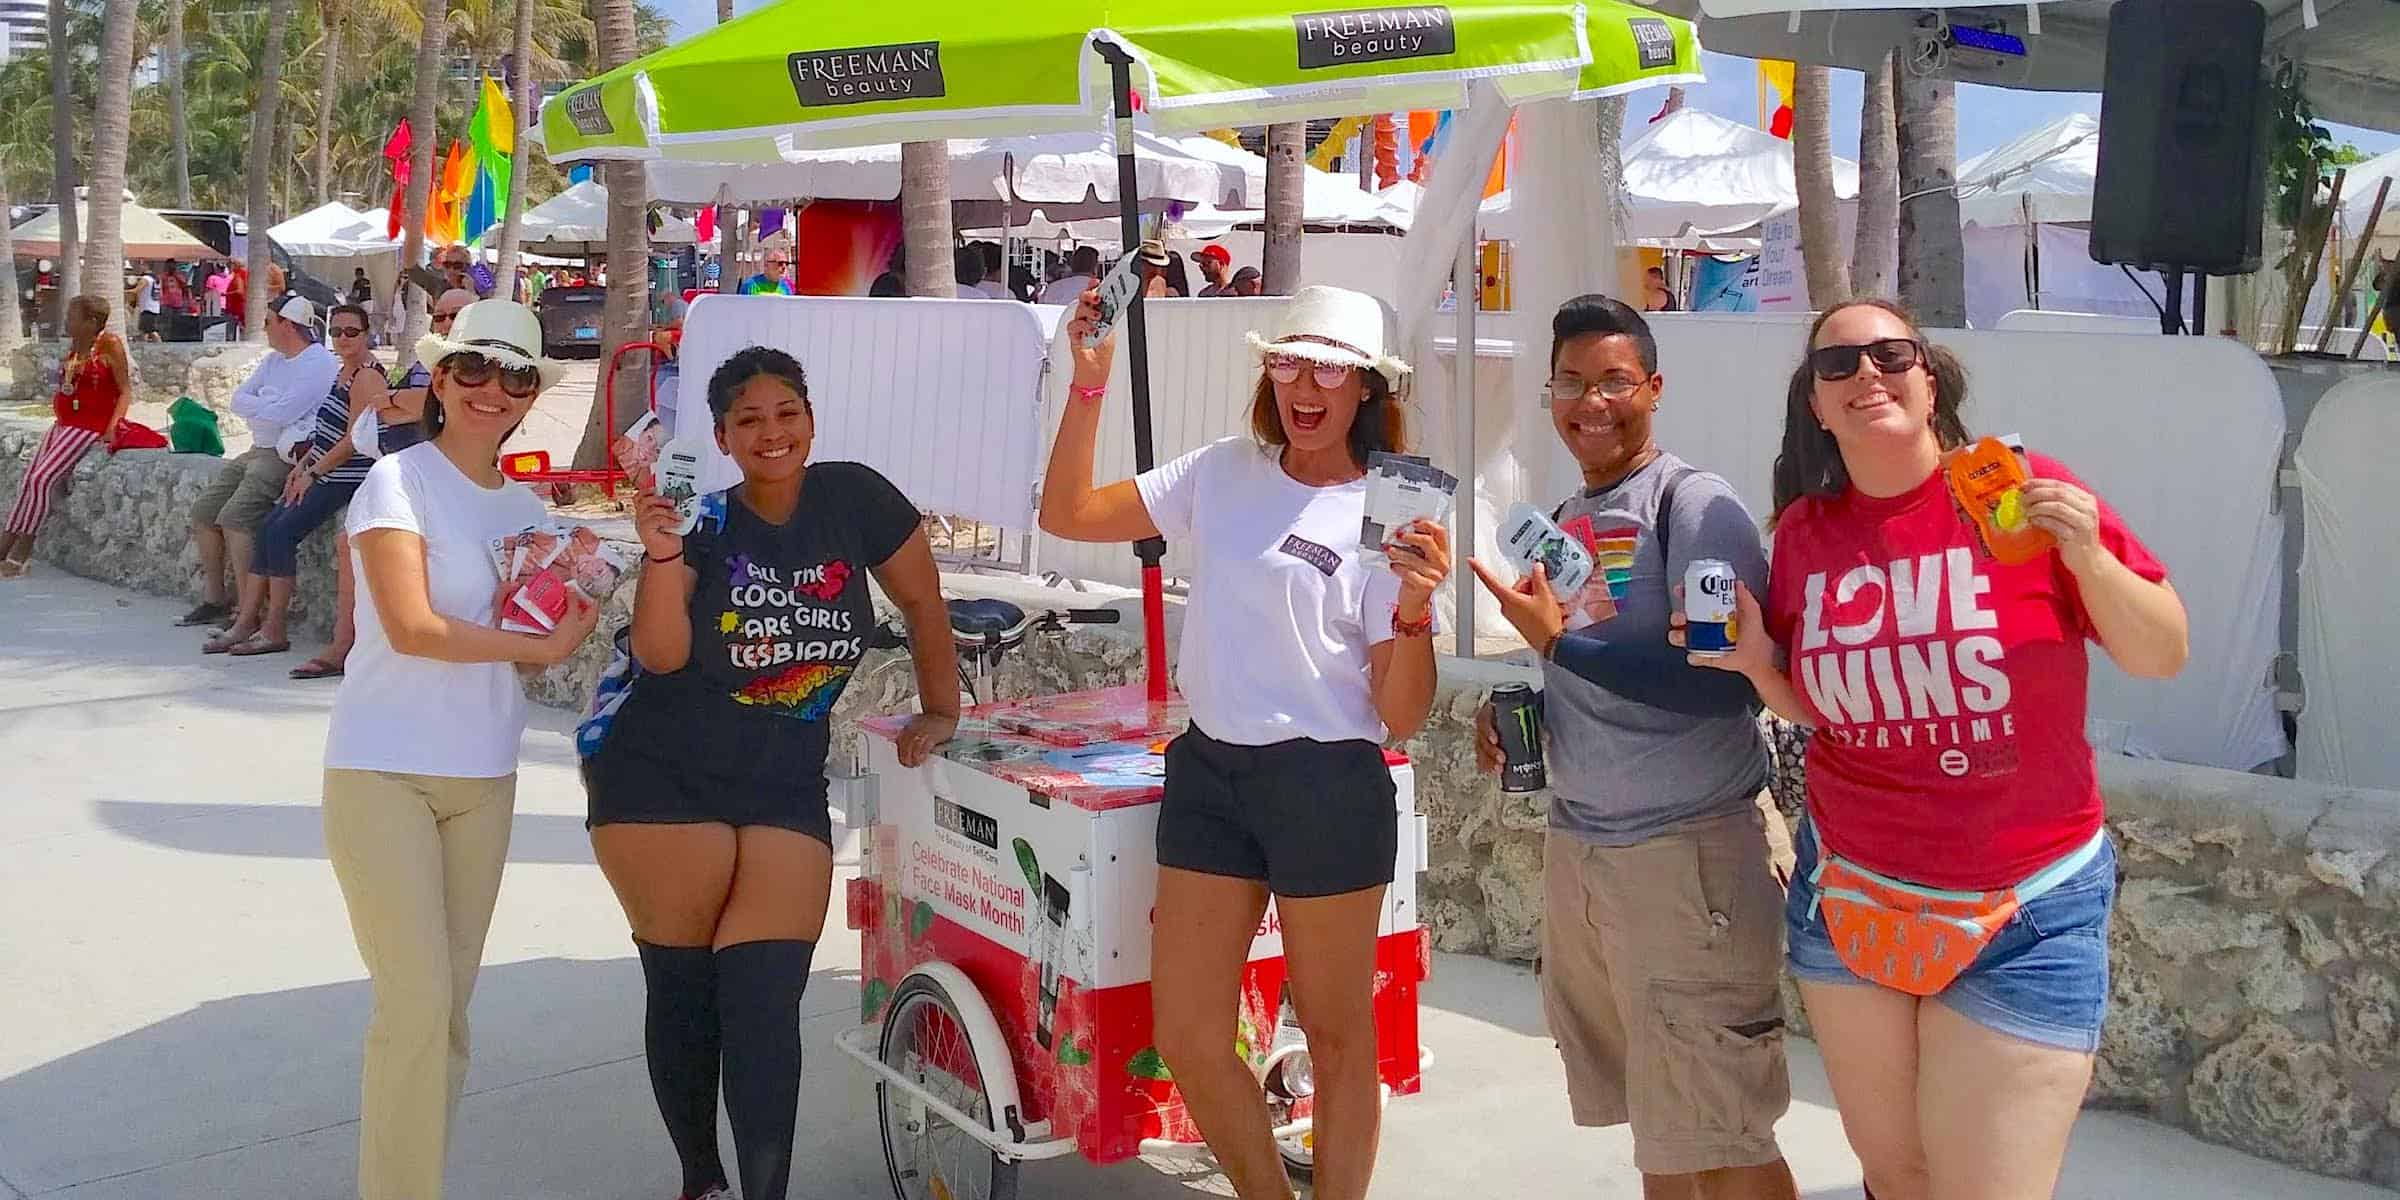 Miami Pride Festival Brand Marketing Activation - South Beach, Miami